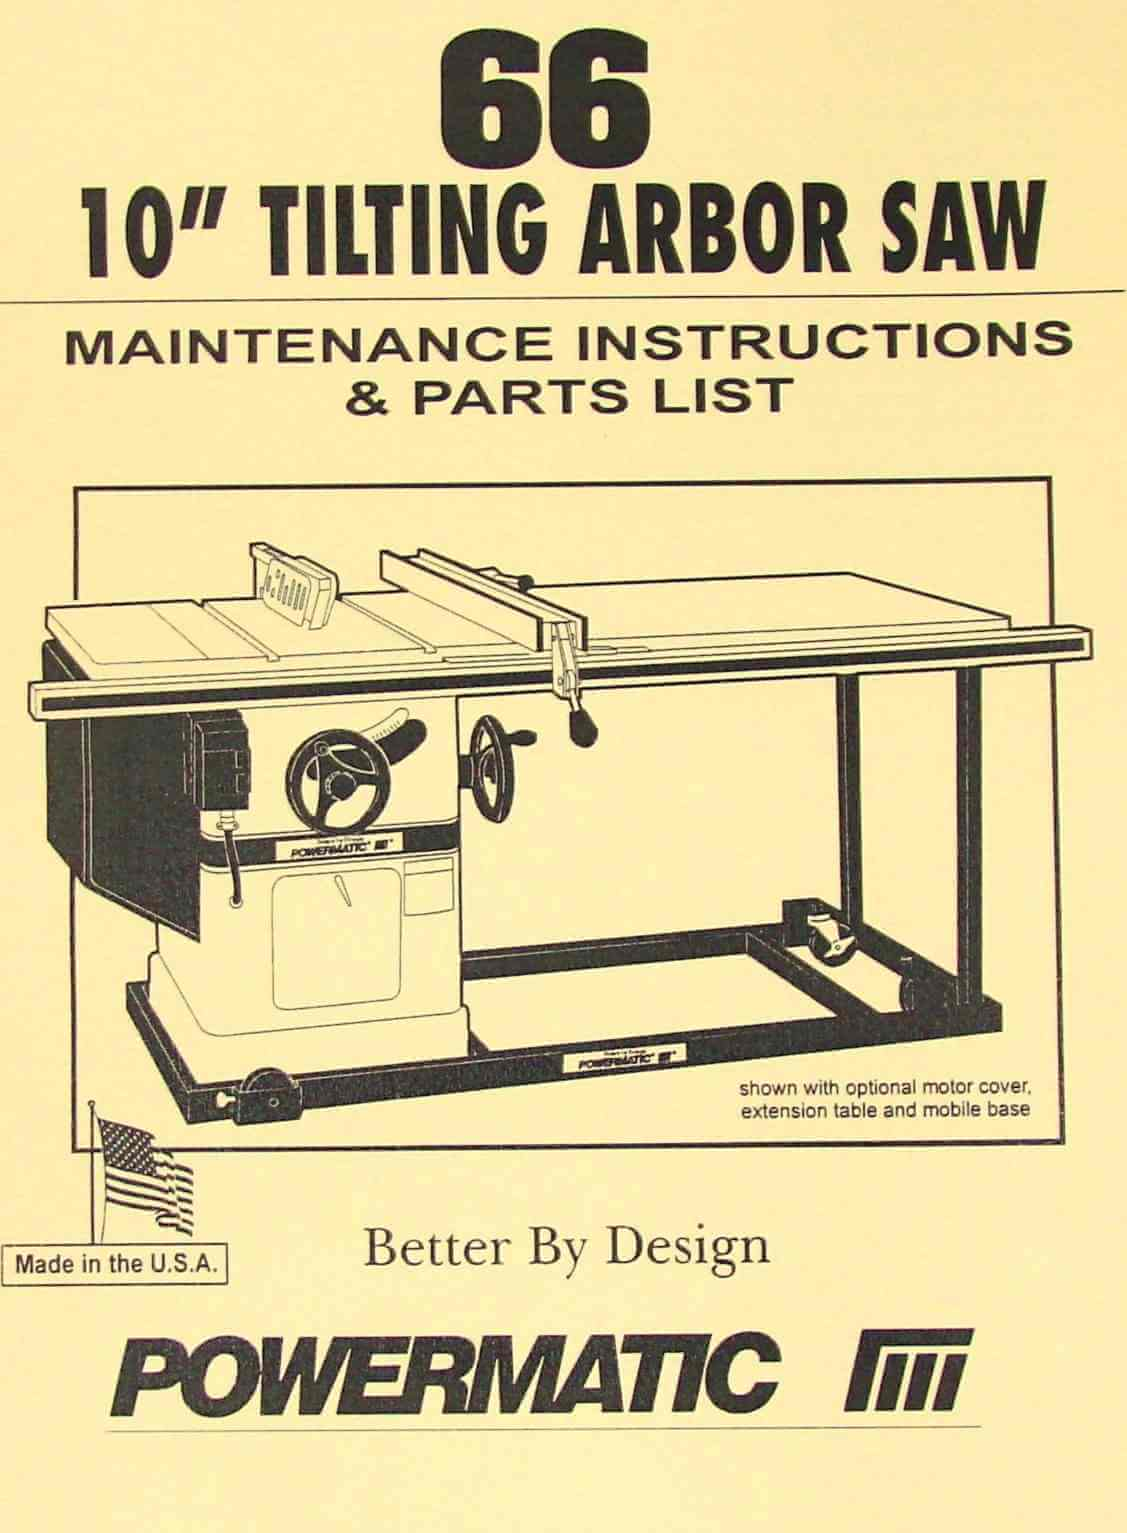 Table Saw Wiring Manual Real Diagram For Craftsman Powermatic Model 66 Instructions And Parts Hitachi